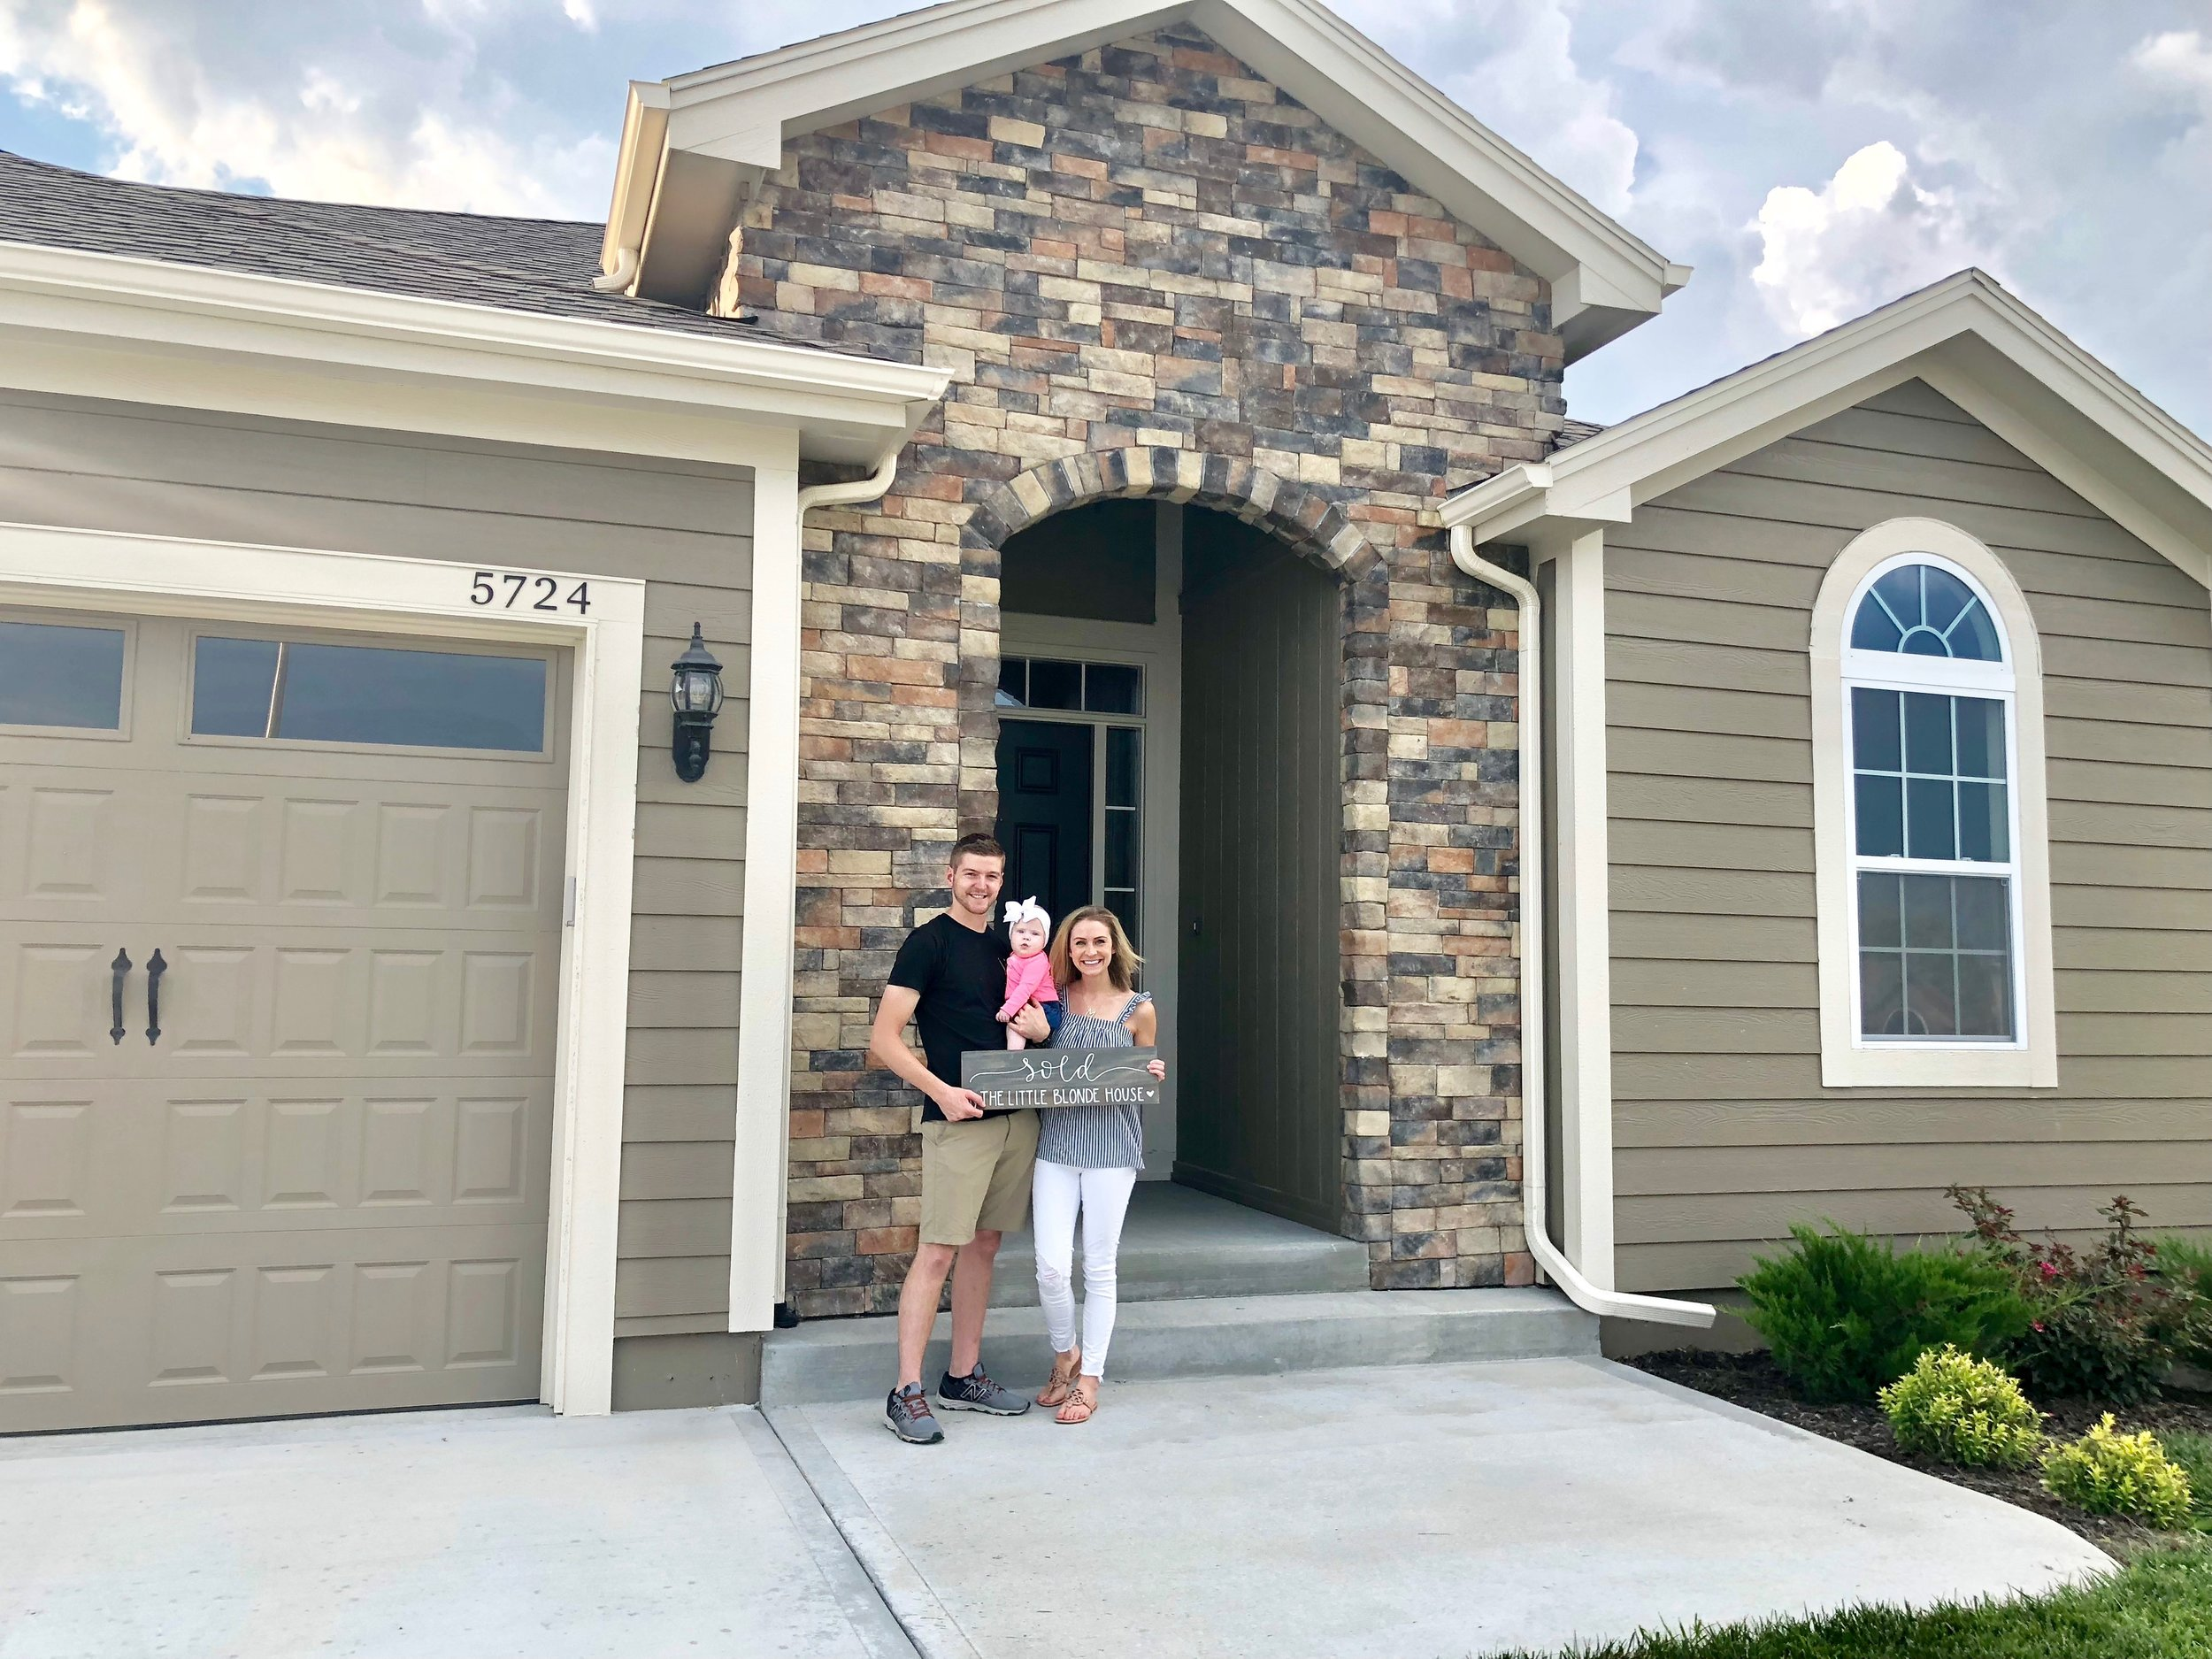 """""""Madison was extremely helpful in both finding us our dream home and selling our house. She made the whole process very easy and took a lot of the pressure and stress of moving off of us. I would highly recommend Madison if you're looking to buy/sell your house!""""  -Morgan, Bennett & Ruby C."""